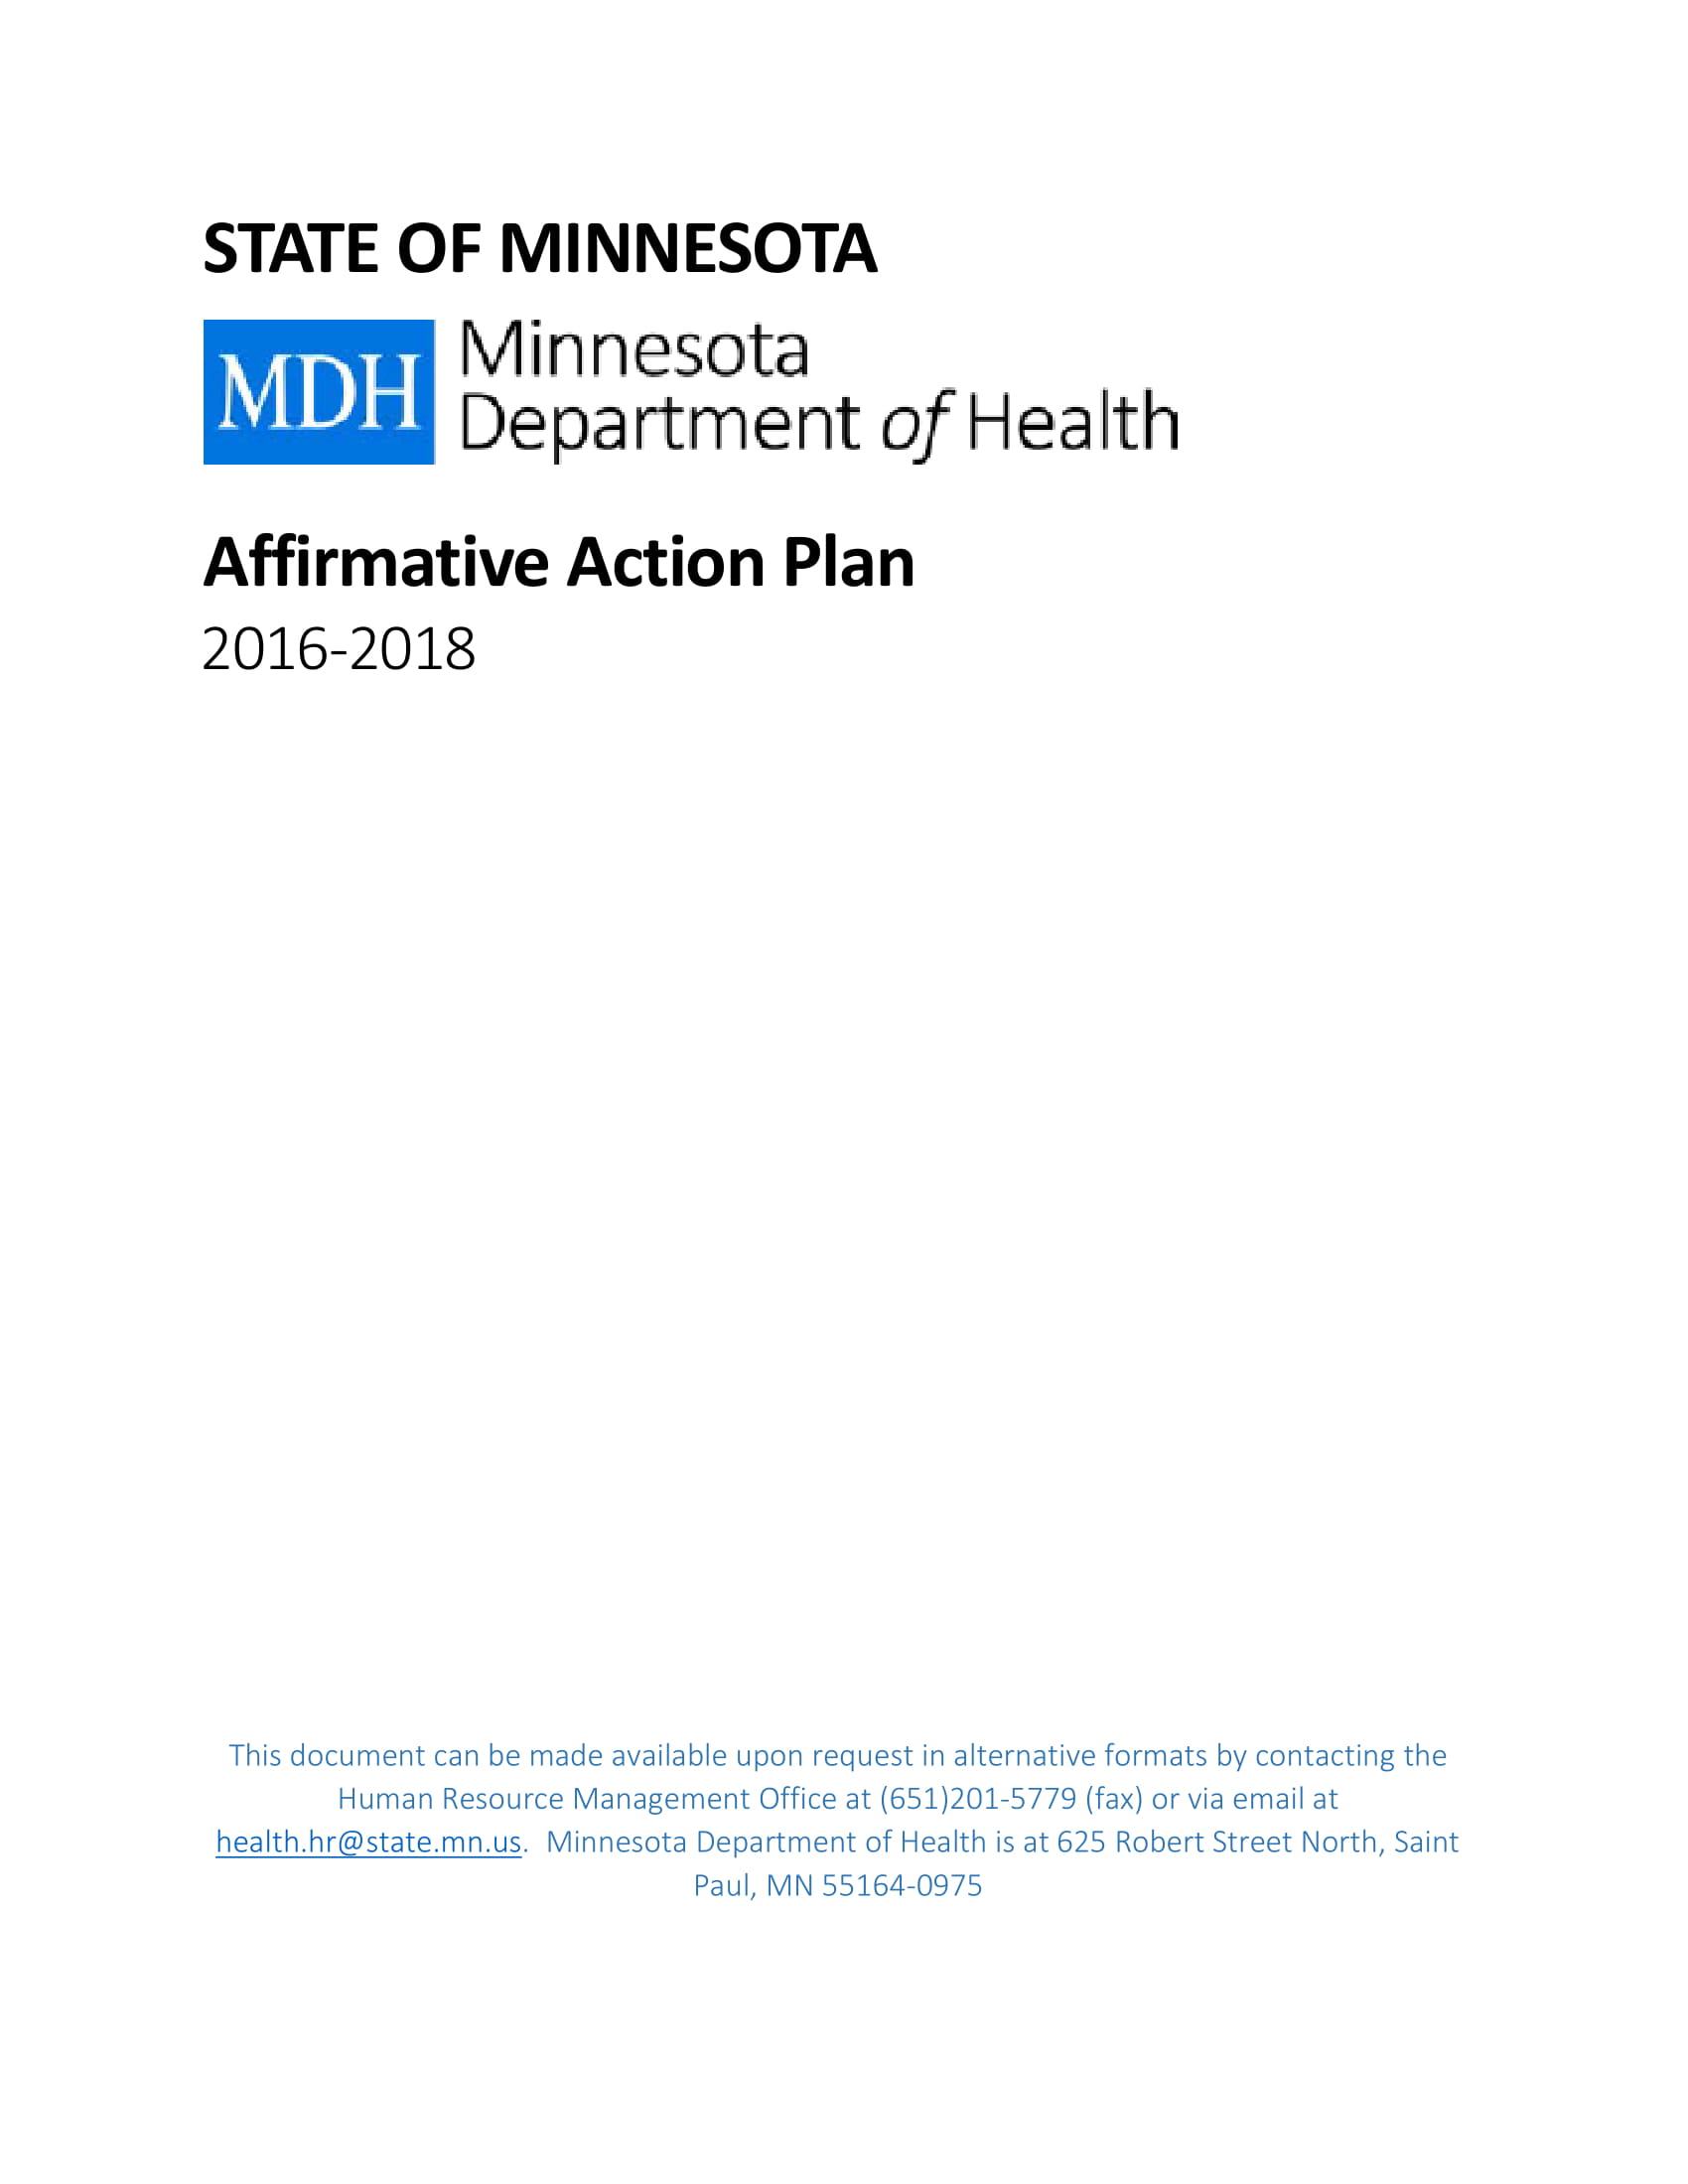 standard affirmative action plan example 01